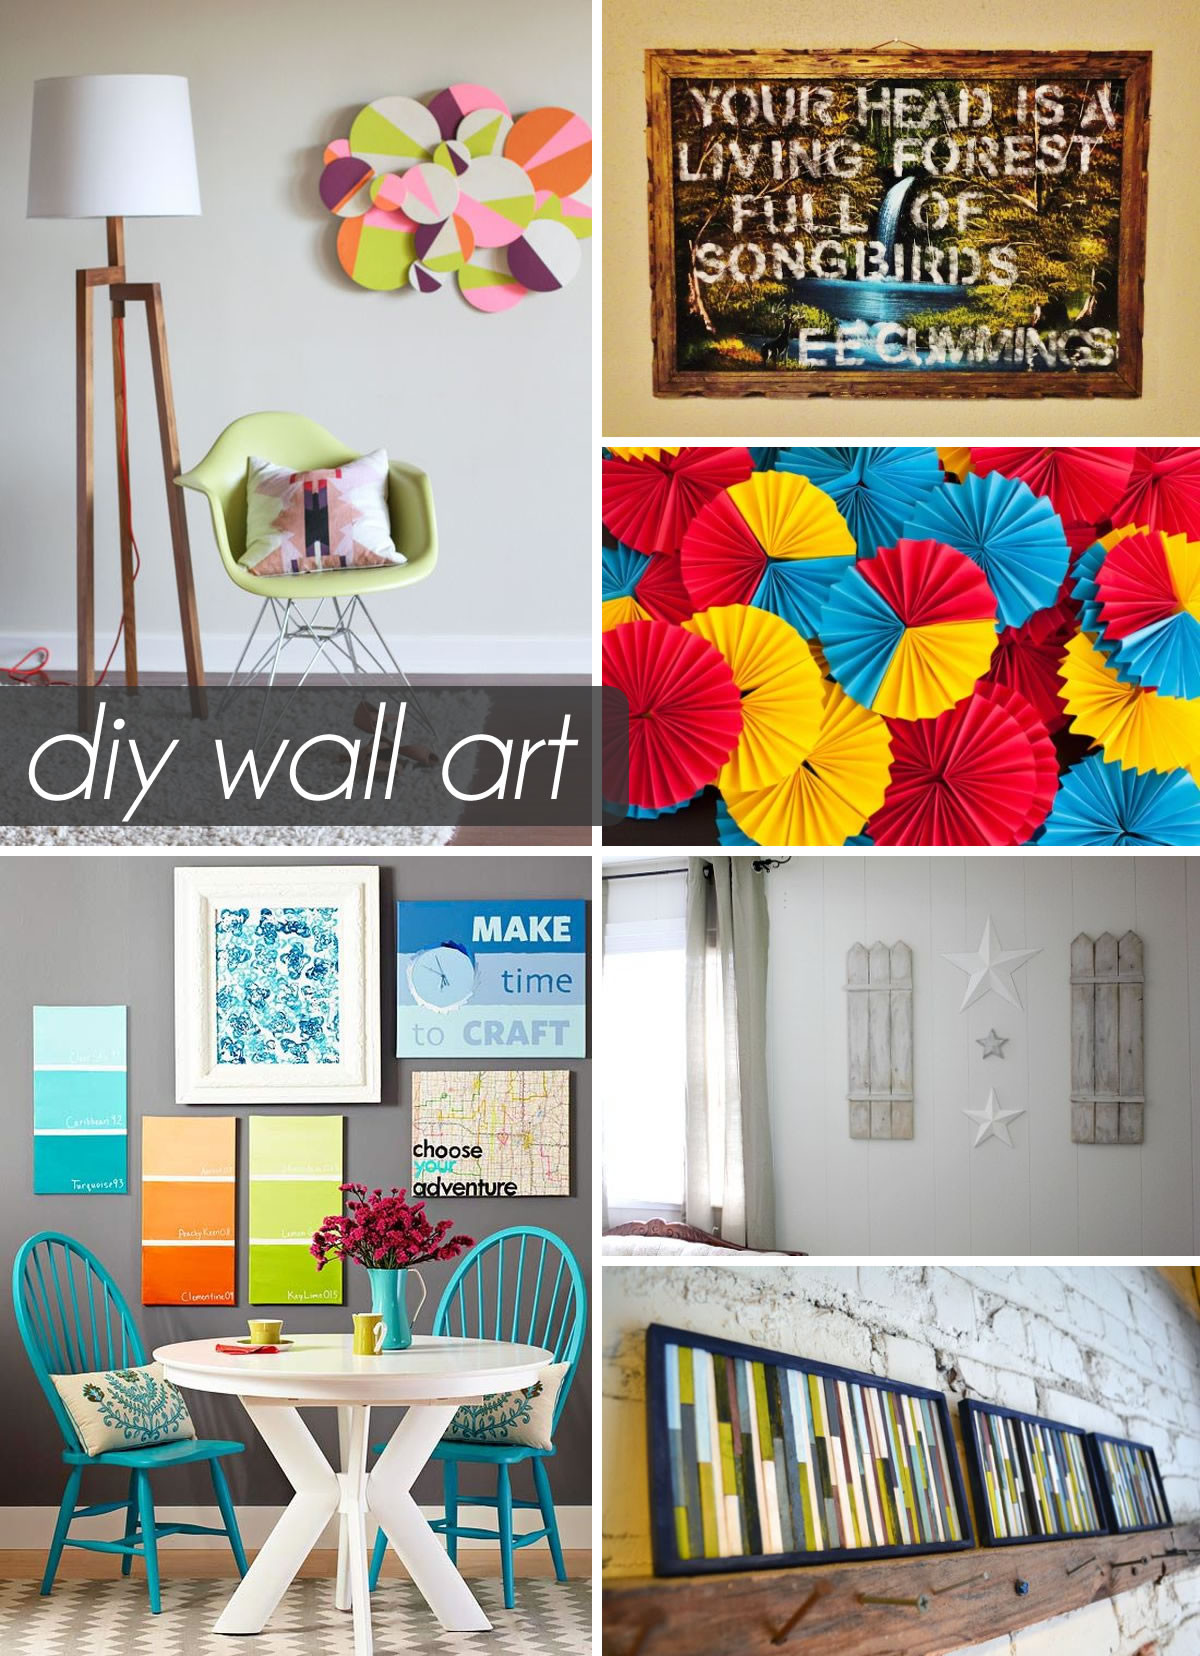 Best ideas about Wall Decors DIY . Save or Pin 50 Beautiful DIY Wall Art Ideas For Your Home Now.